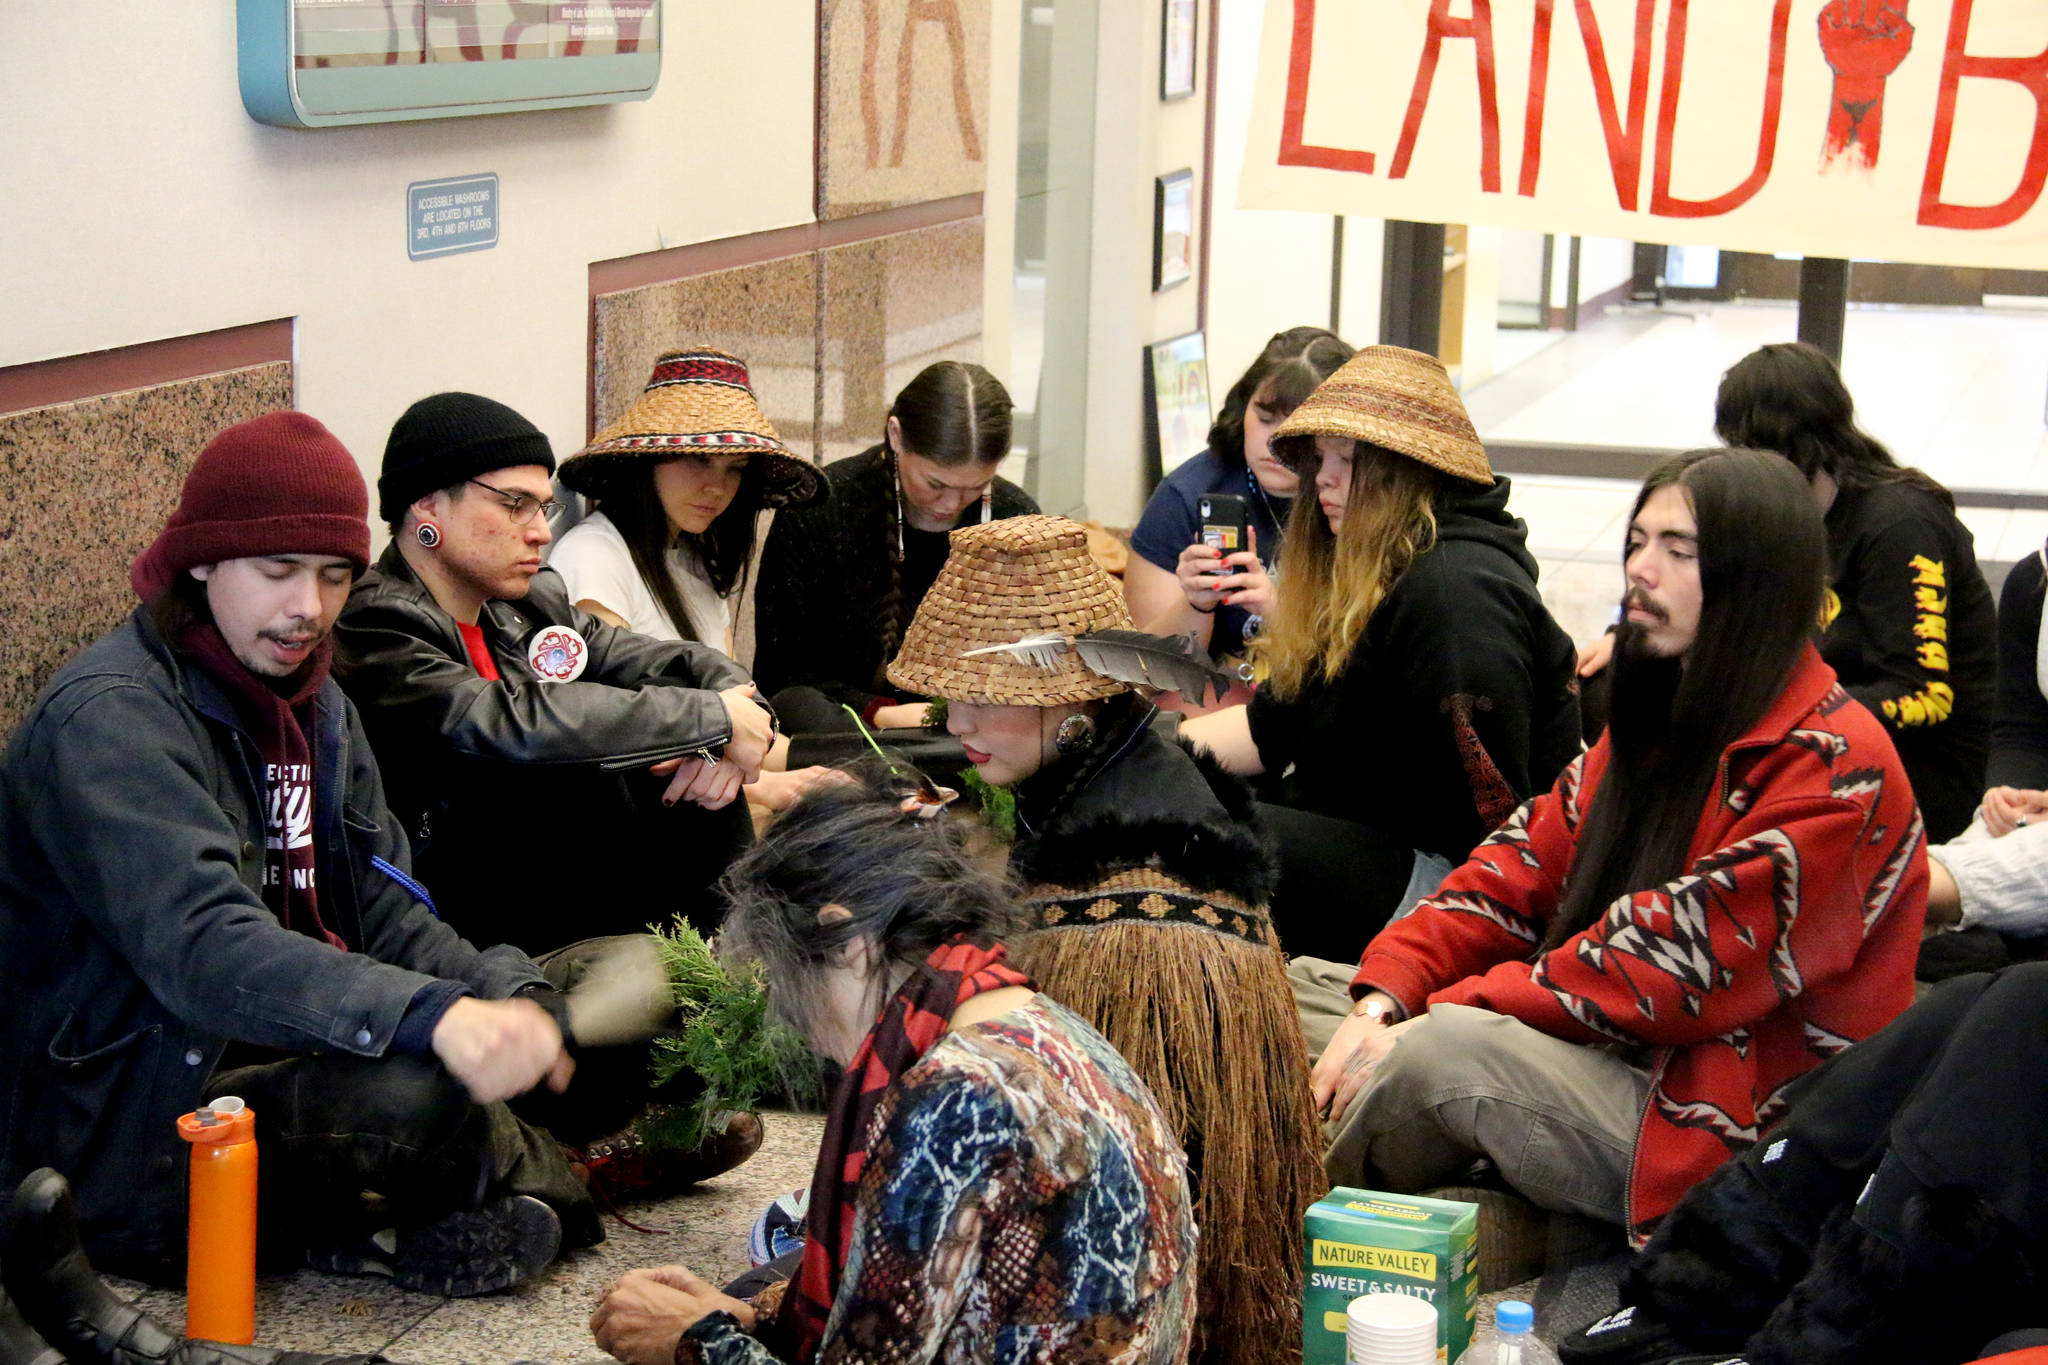 Kolin Sutherland-Wilson sings a traditional Wet'suwet'en song at the protest on Tuesday. (Kendra Crighton/News Staff)